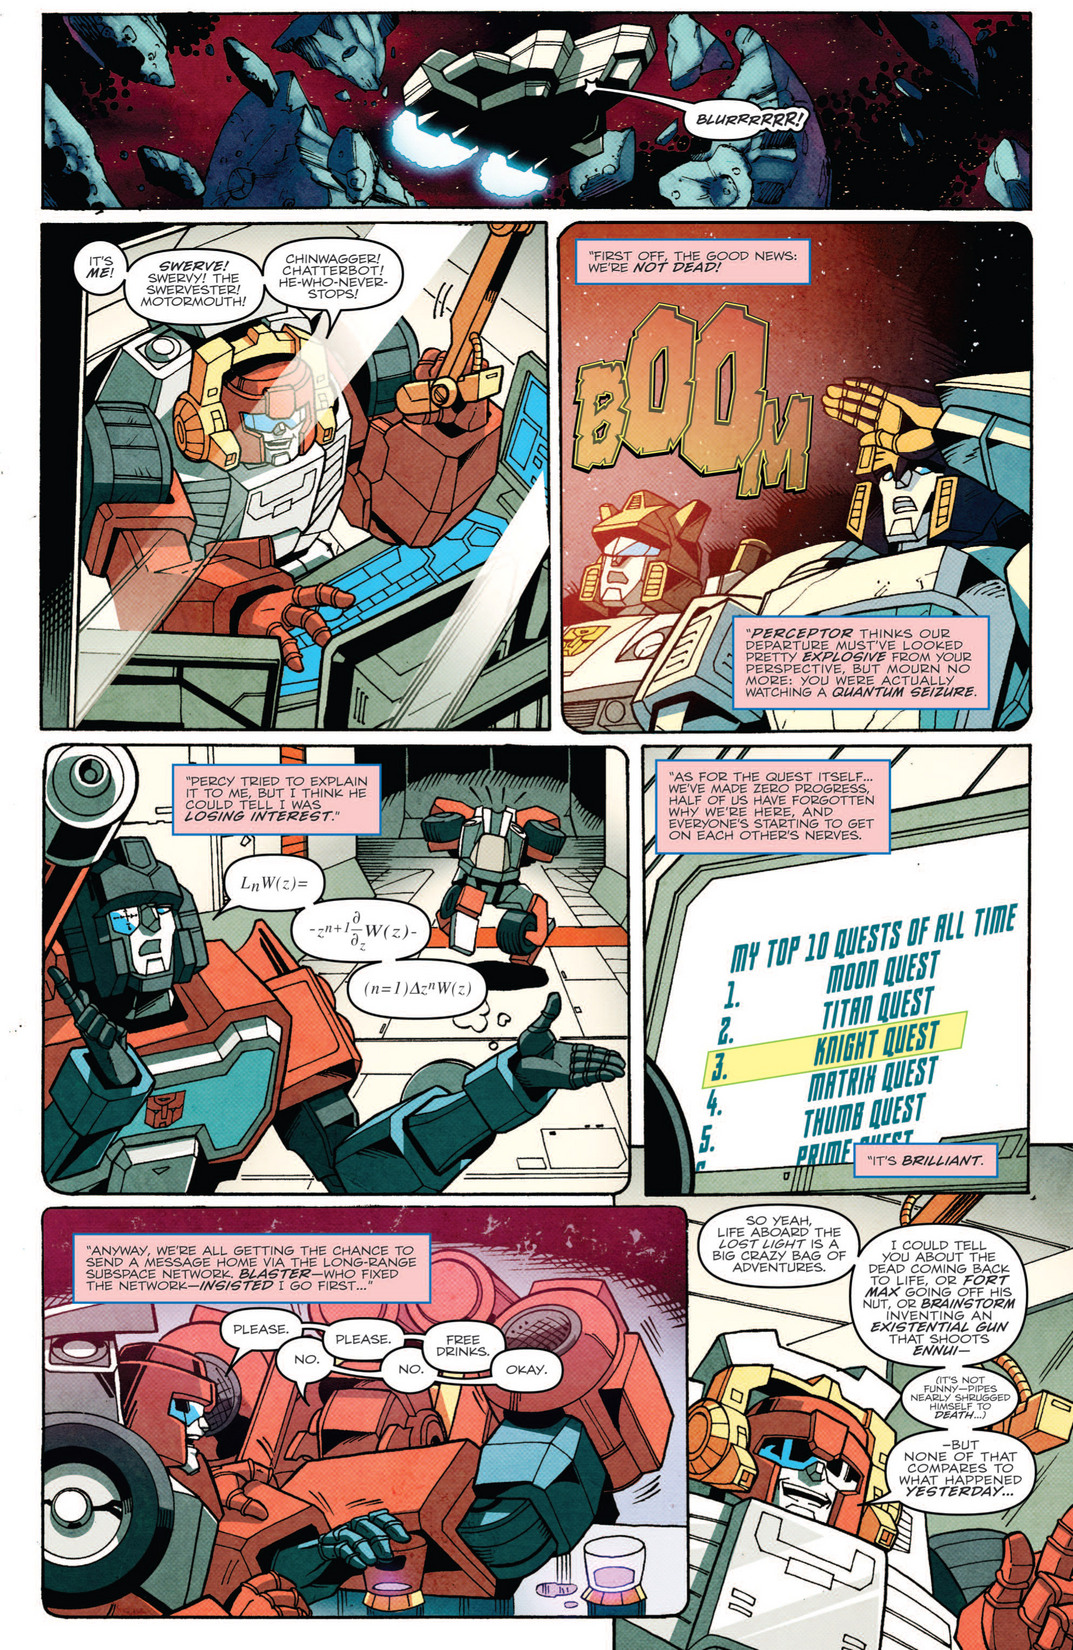 The dialogue is snappy and the art looks great. Go for it.